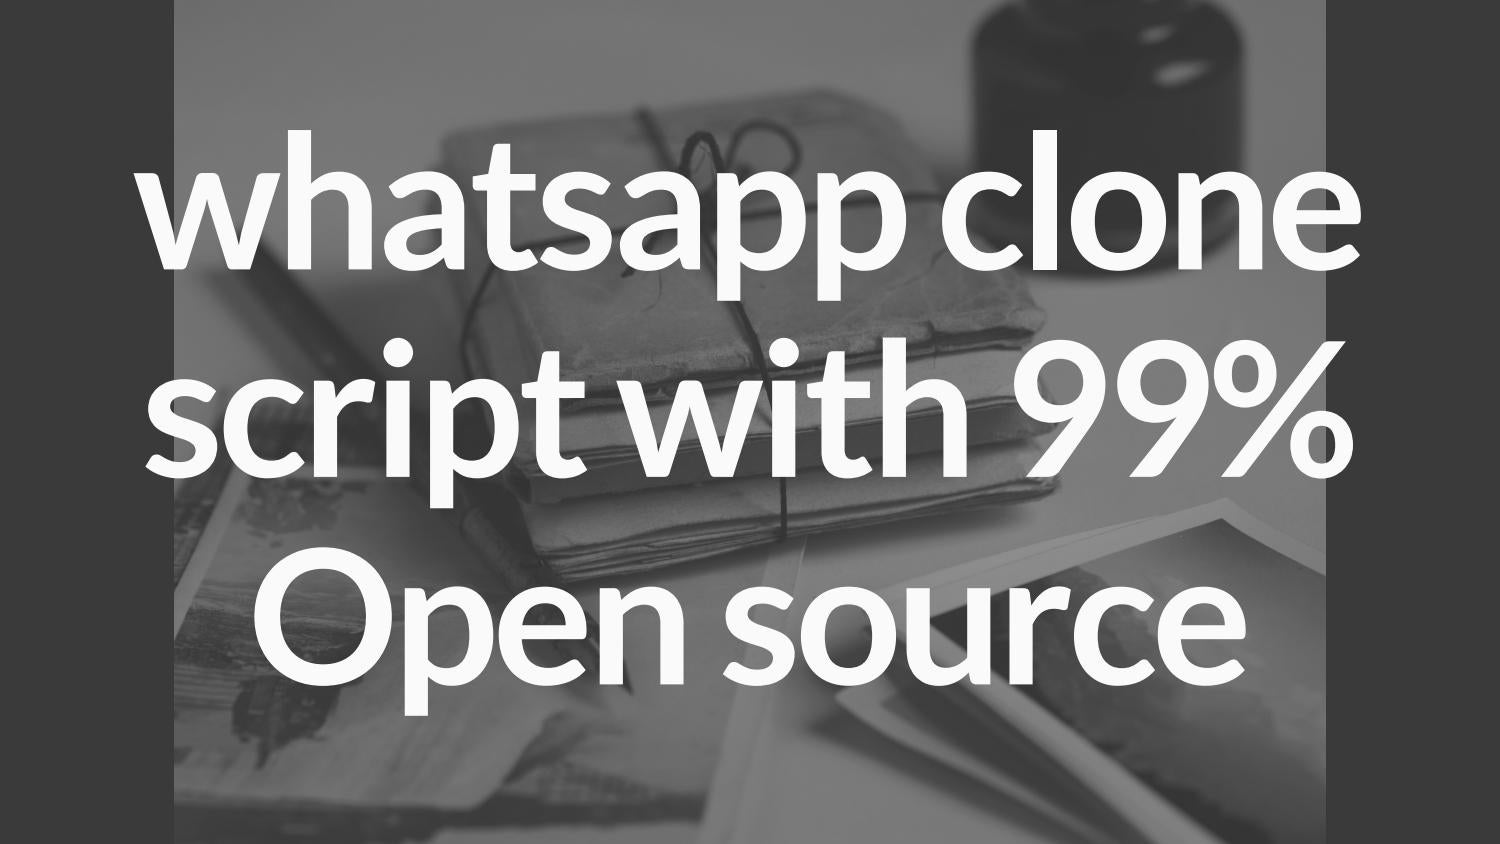 Whatsapp clone script with 99% Open source by Appkodes - issuu